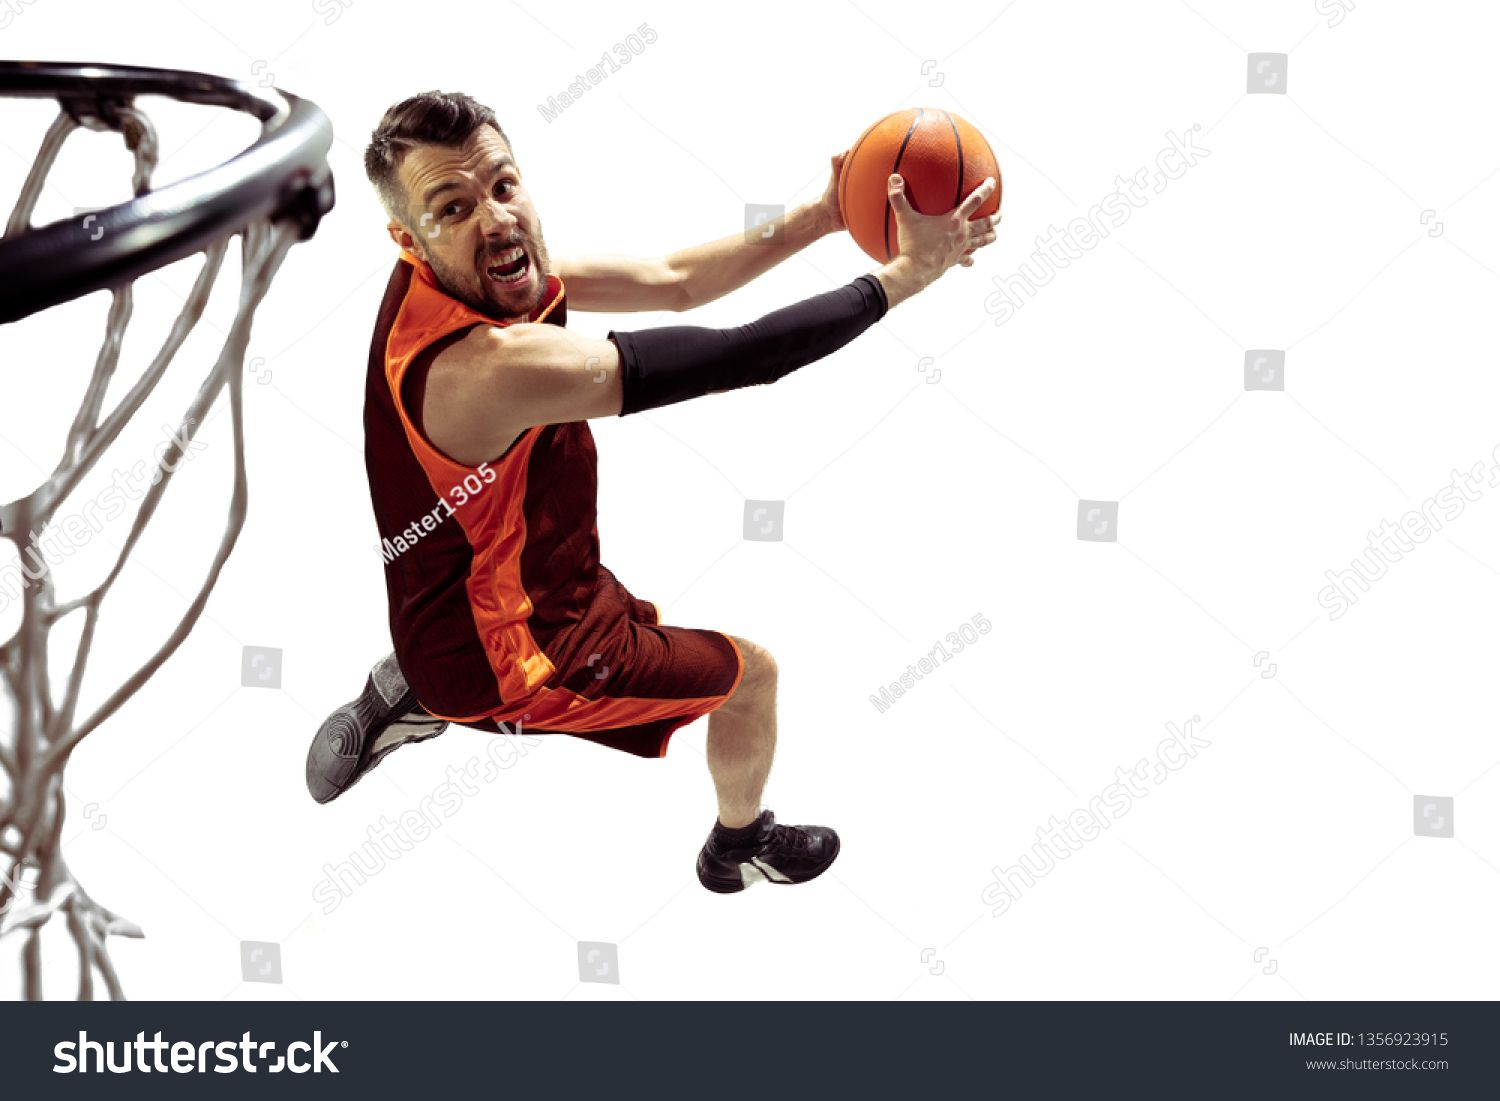 Full Length Portrait Of A Basketball Player With Ball Isolated On White Background Advertising Concept Fit Caucasian Athl Basketball Players Athlete Portrait